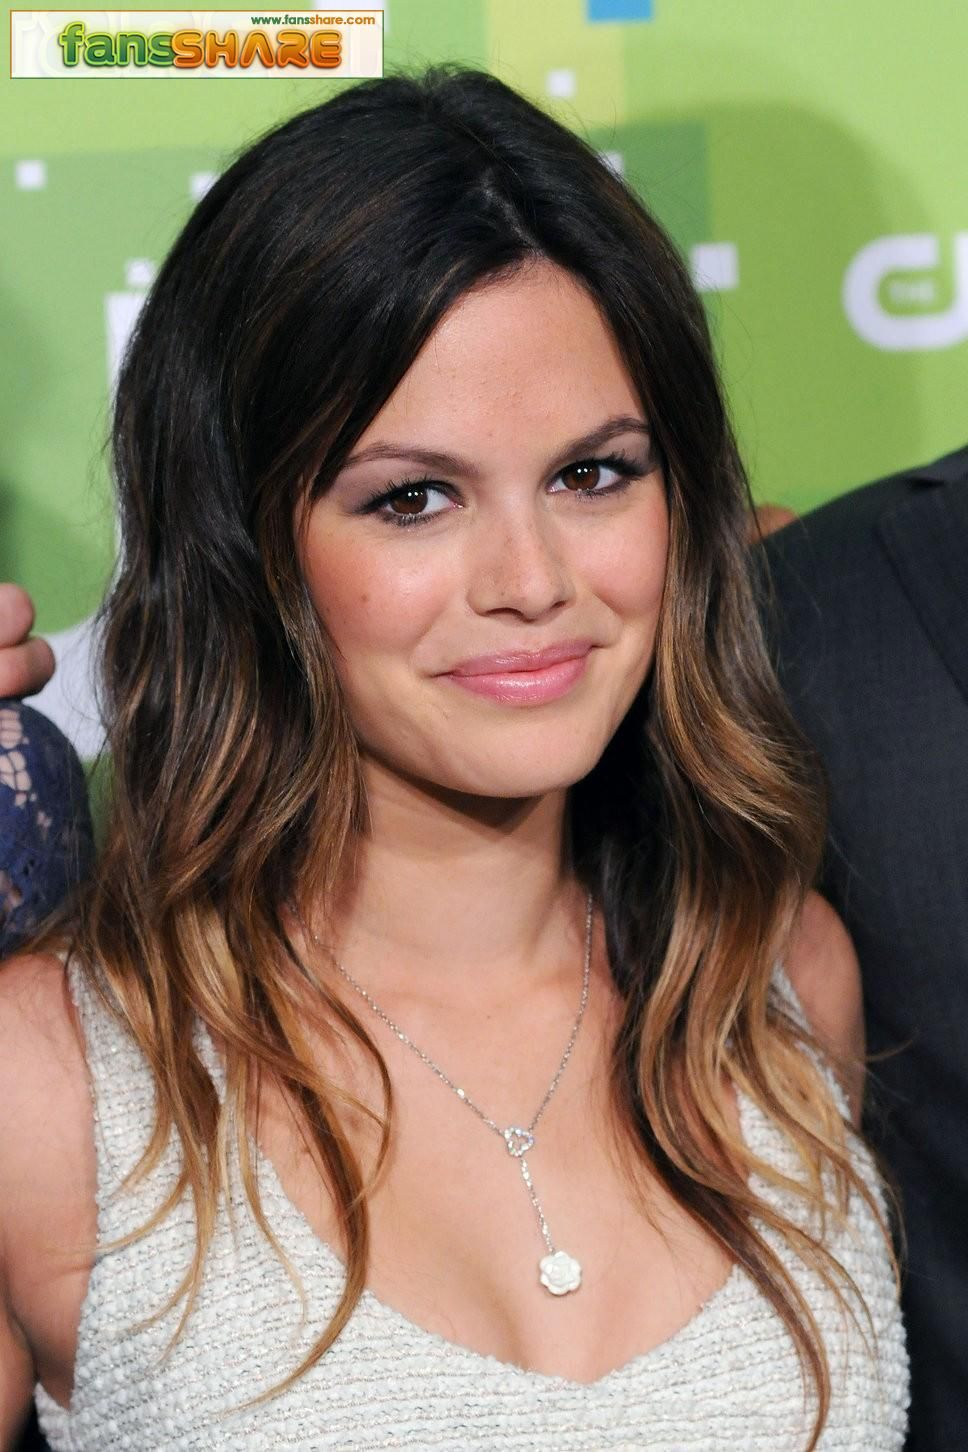 celebrity hairstyles | style: a particular kind, sort, or